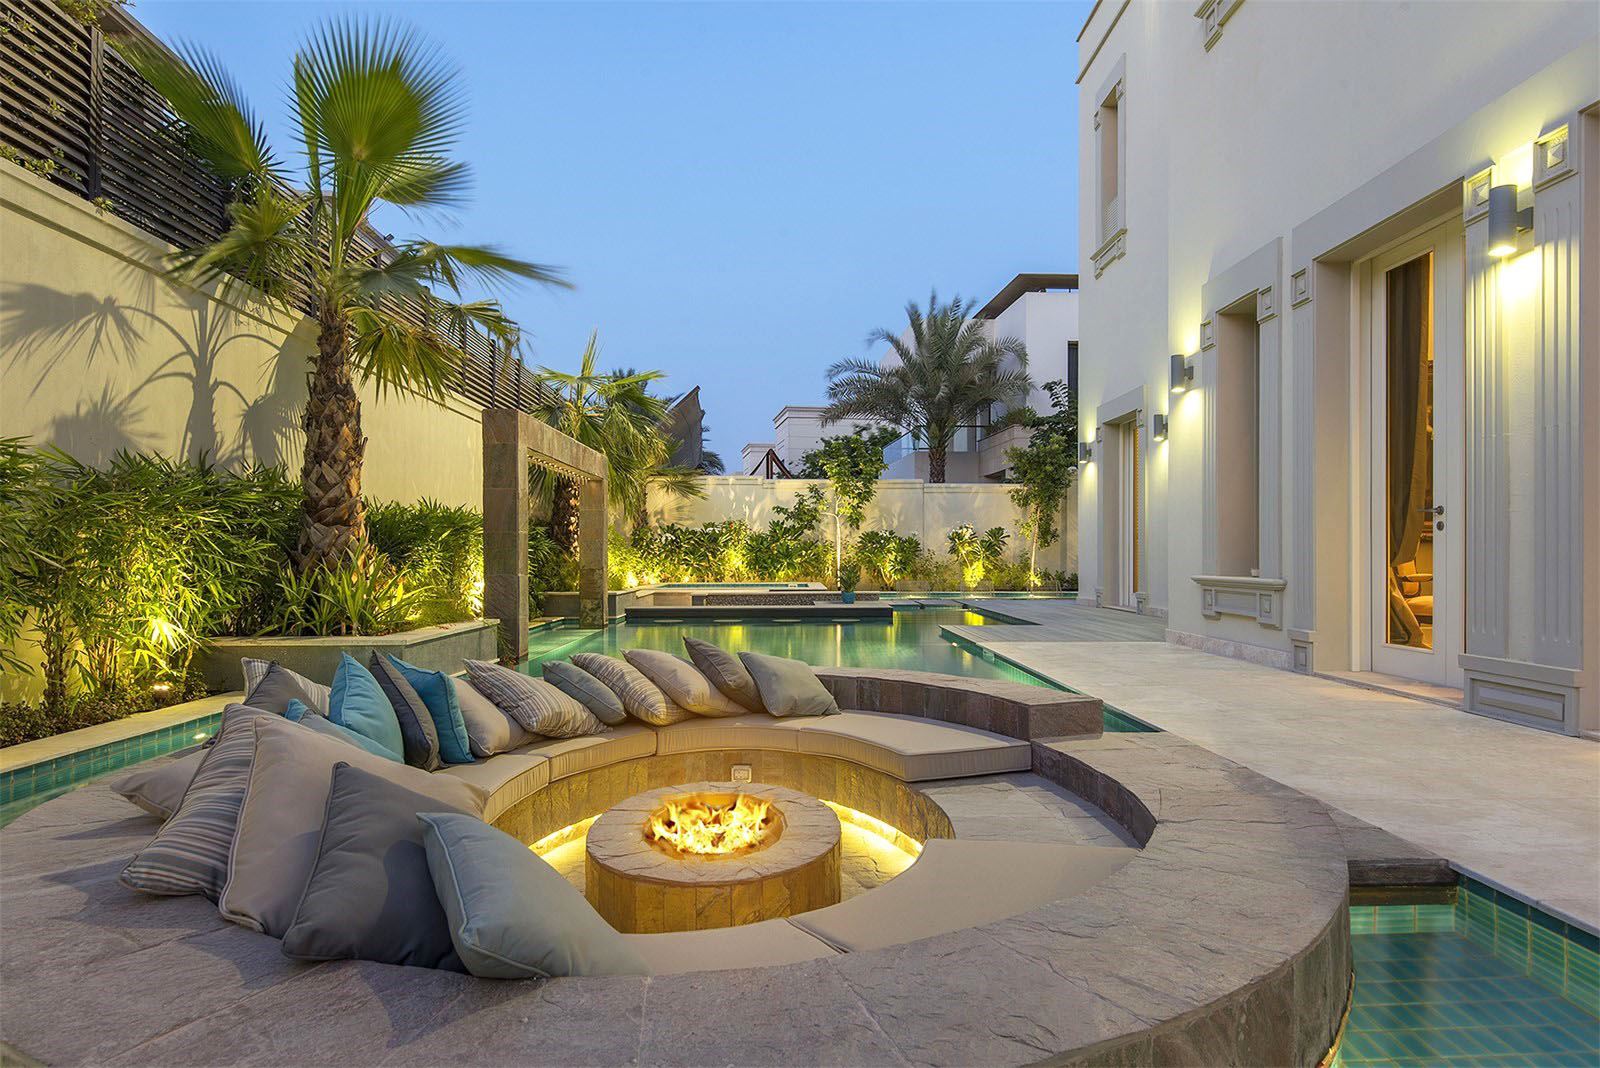 Patio Ideas to Make Your Backyard the Ideal Summer Escape on Luxury Backyard Design id=66969